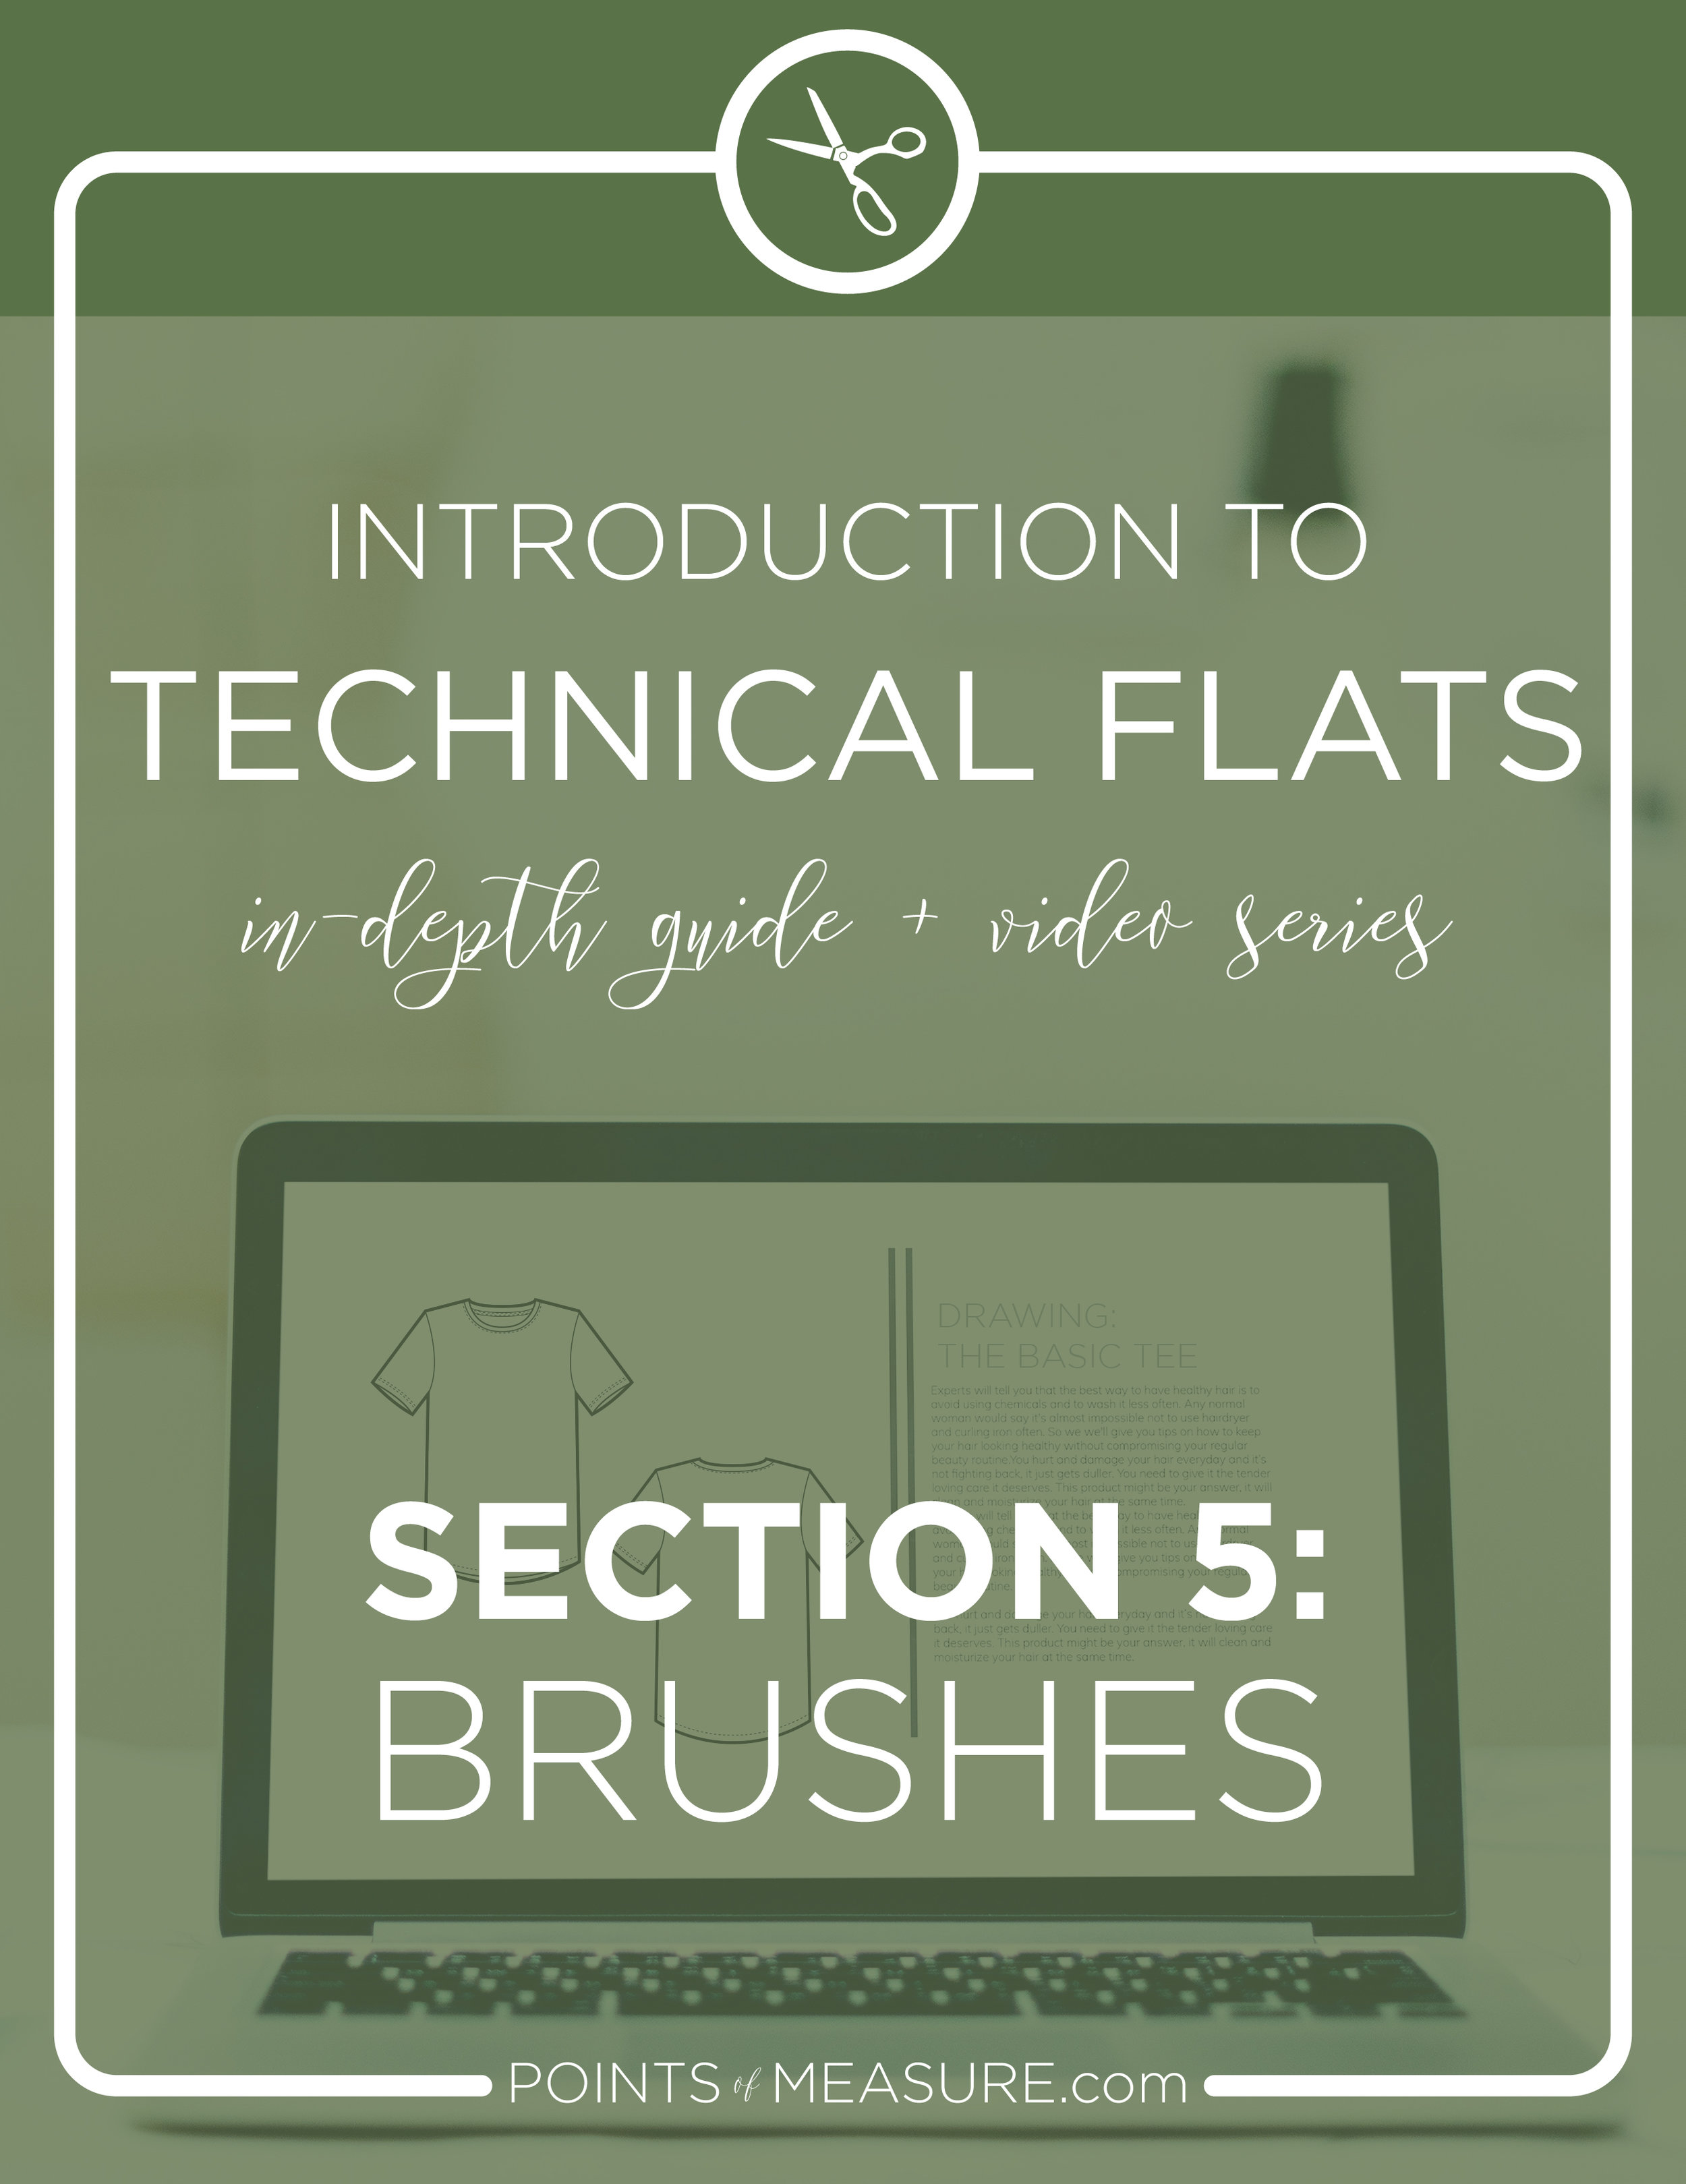 introduction-to-technical-flats-section-5-brushes-points-of-measure.jpg